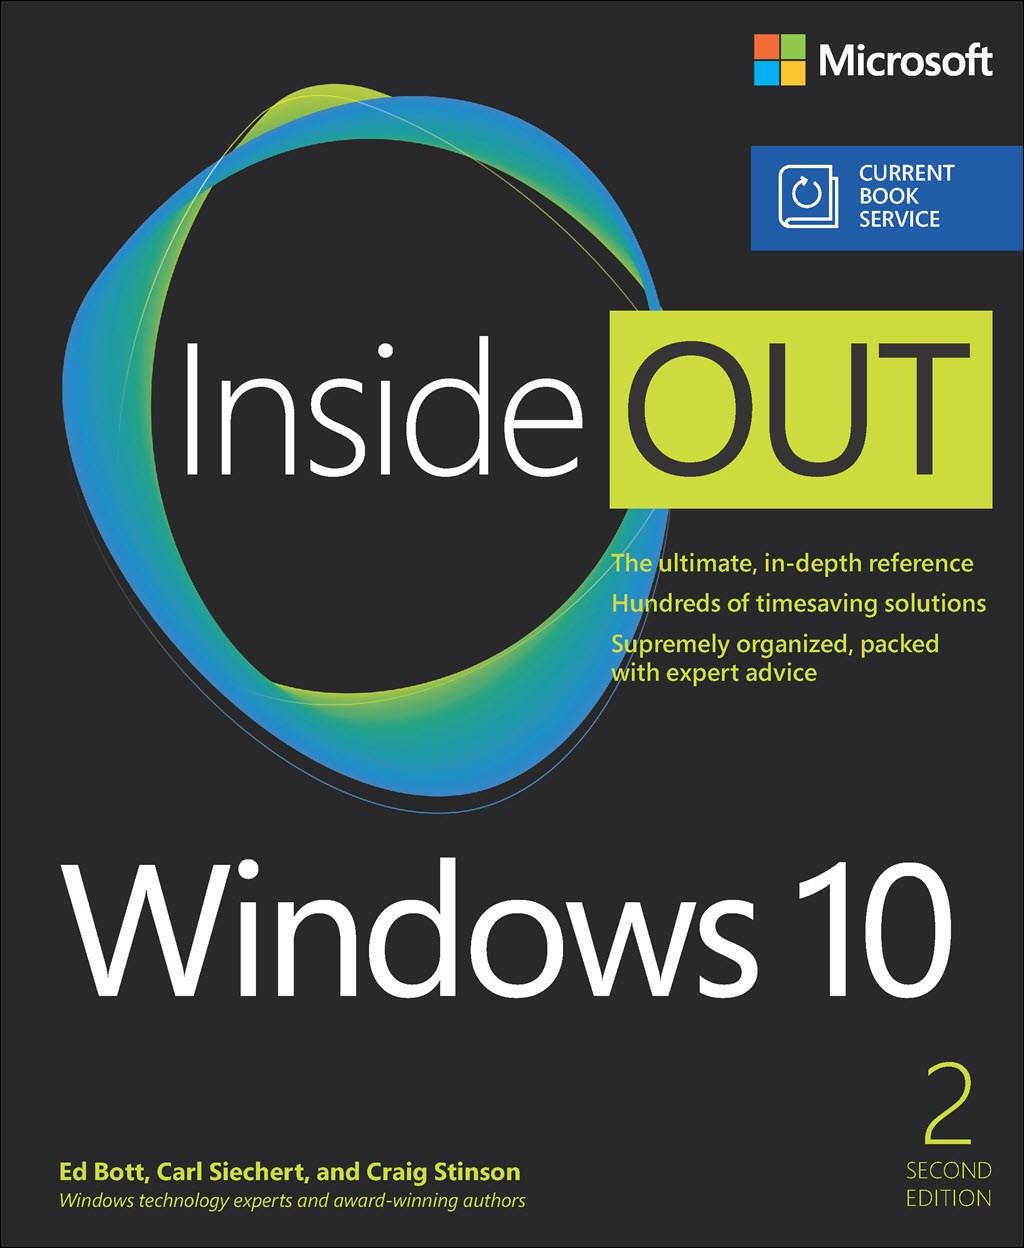 Windows 10 Inside Out (Web Edition includes Current Book Service), 2nd Edition